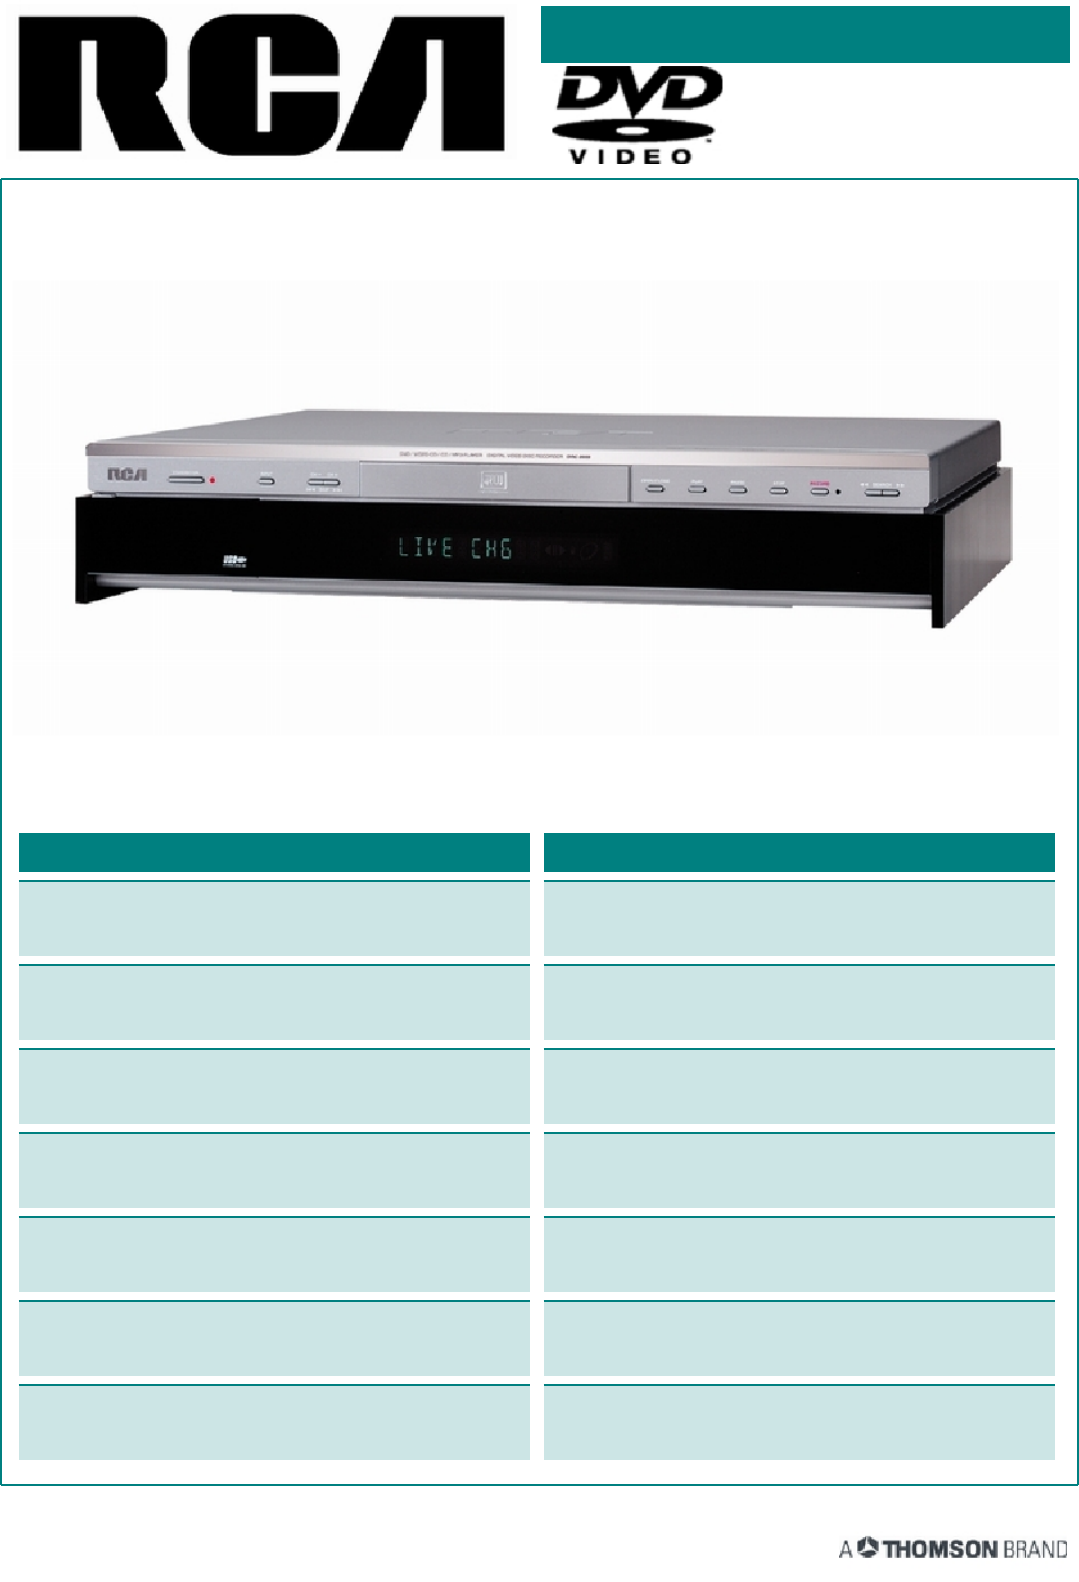 rca dvd recorder drc8000n user guide manualsonline com rh tv manualsonline com RCA DRC8030N Manual RCA DVD VCR Combo Player